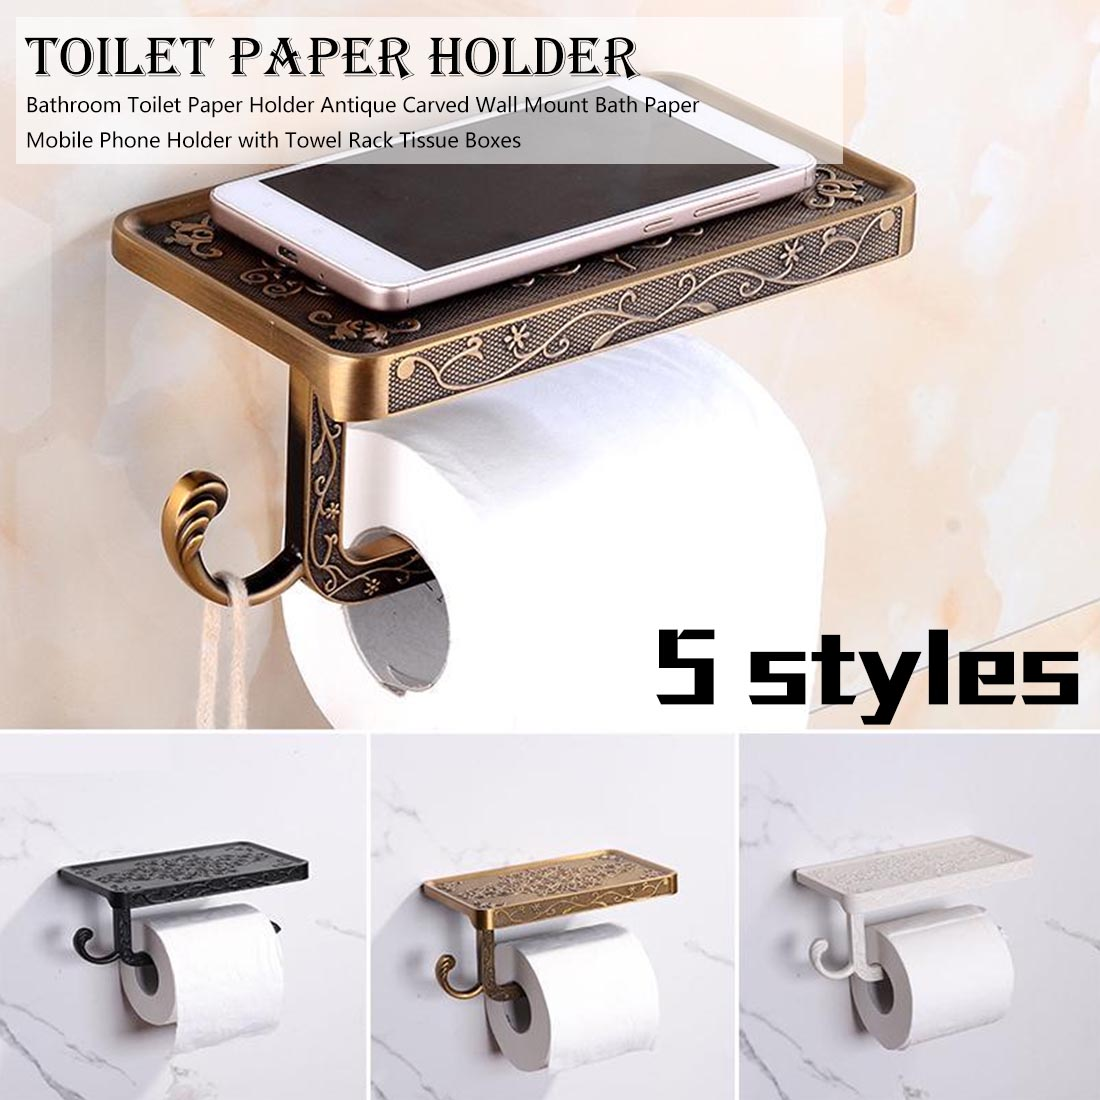 1pc Toilet Paper Holder Antique Carved Bathroom Wall Mount Bath Paper Mobile Phone Holder With Towel Rack Tissue Boxes